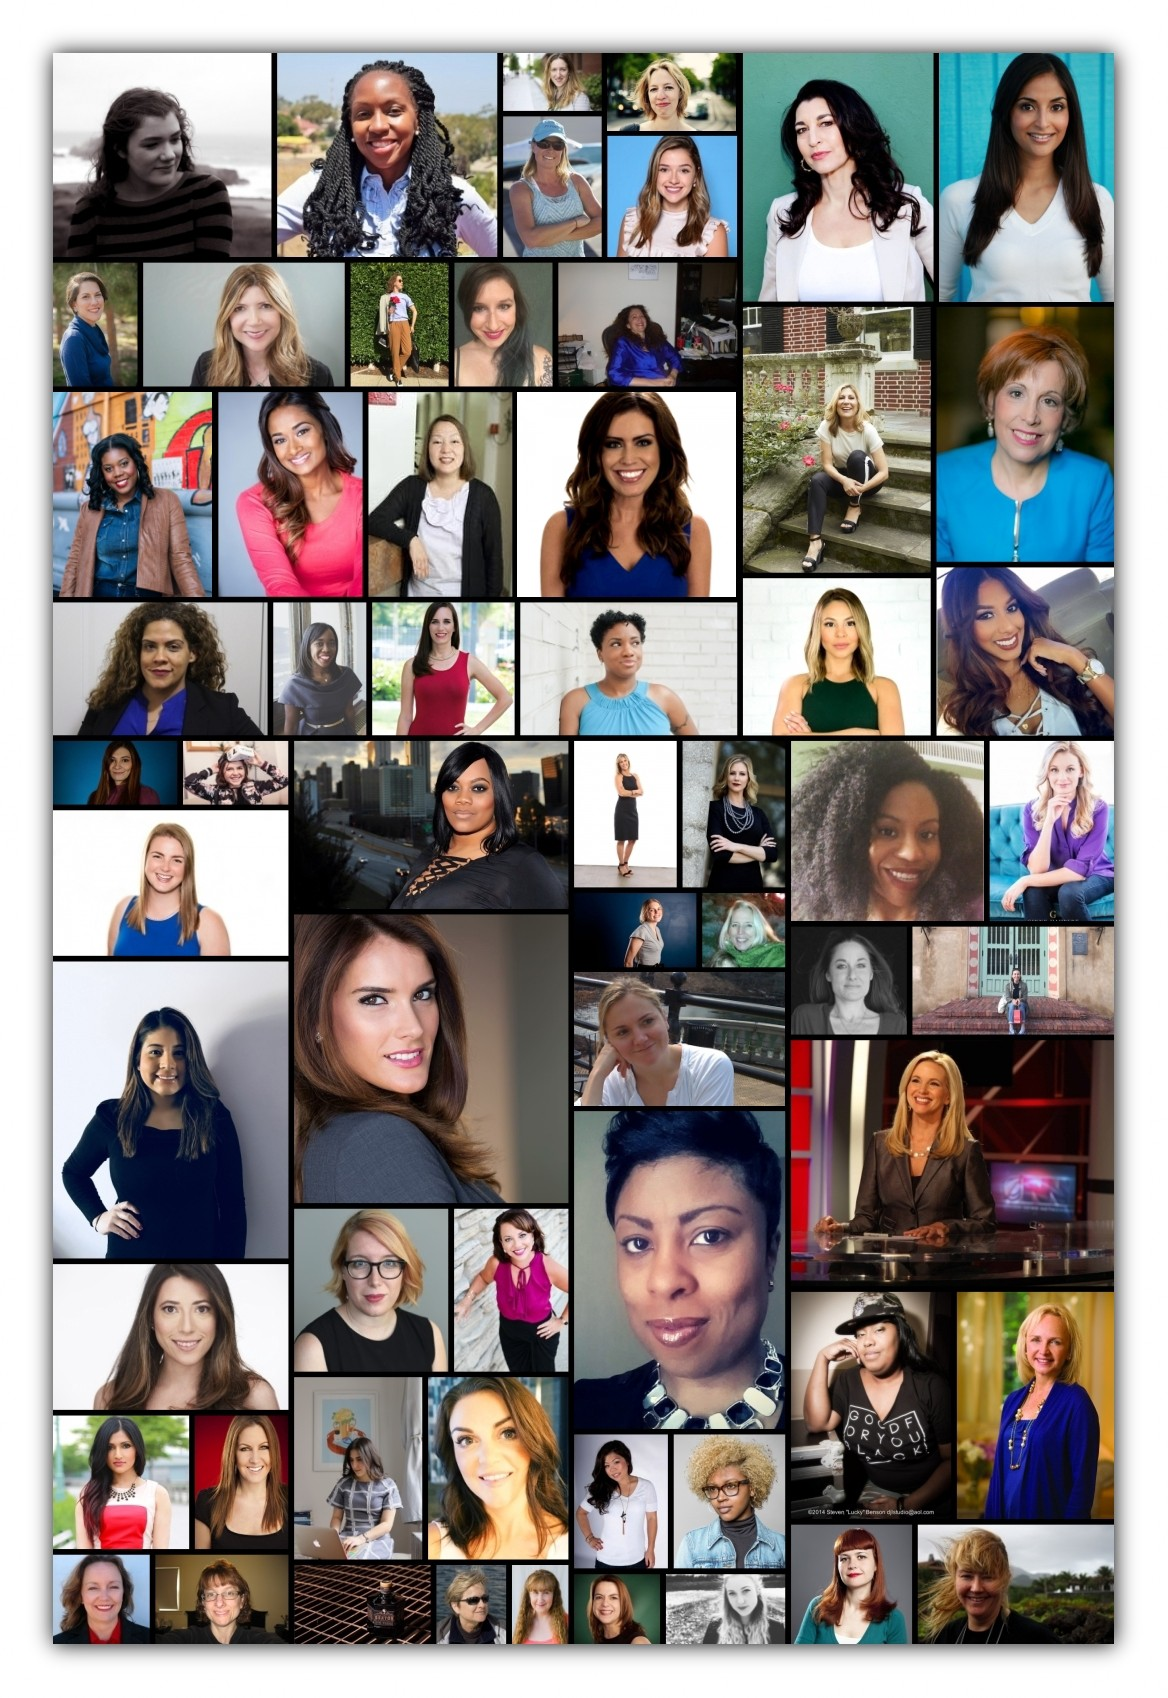 2df97e25d 59 Women In Journalism Share Their Top 5 Tips To Excel As A Journalist